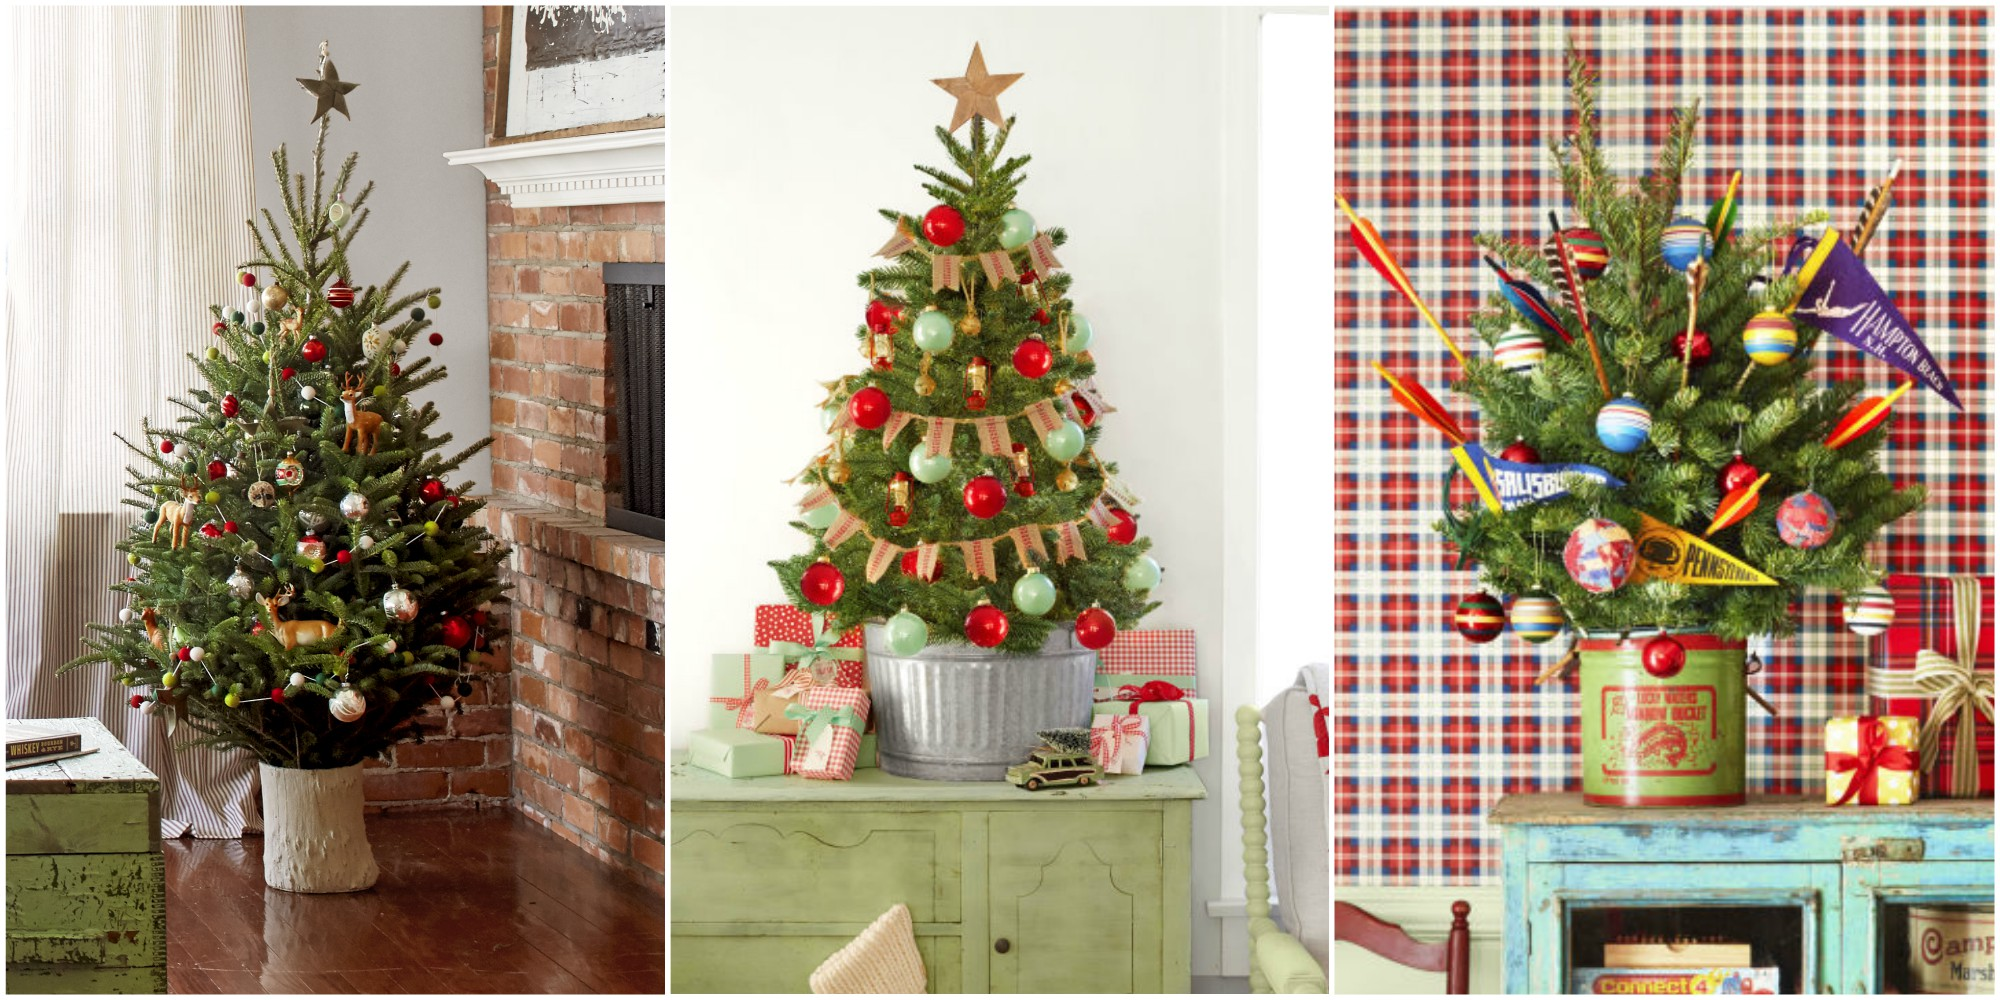 18 Best Small Christmas Trees - Ideas for Decorating Mini ...